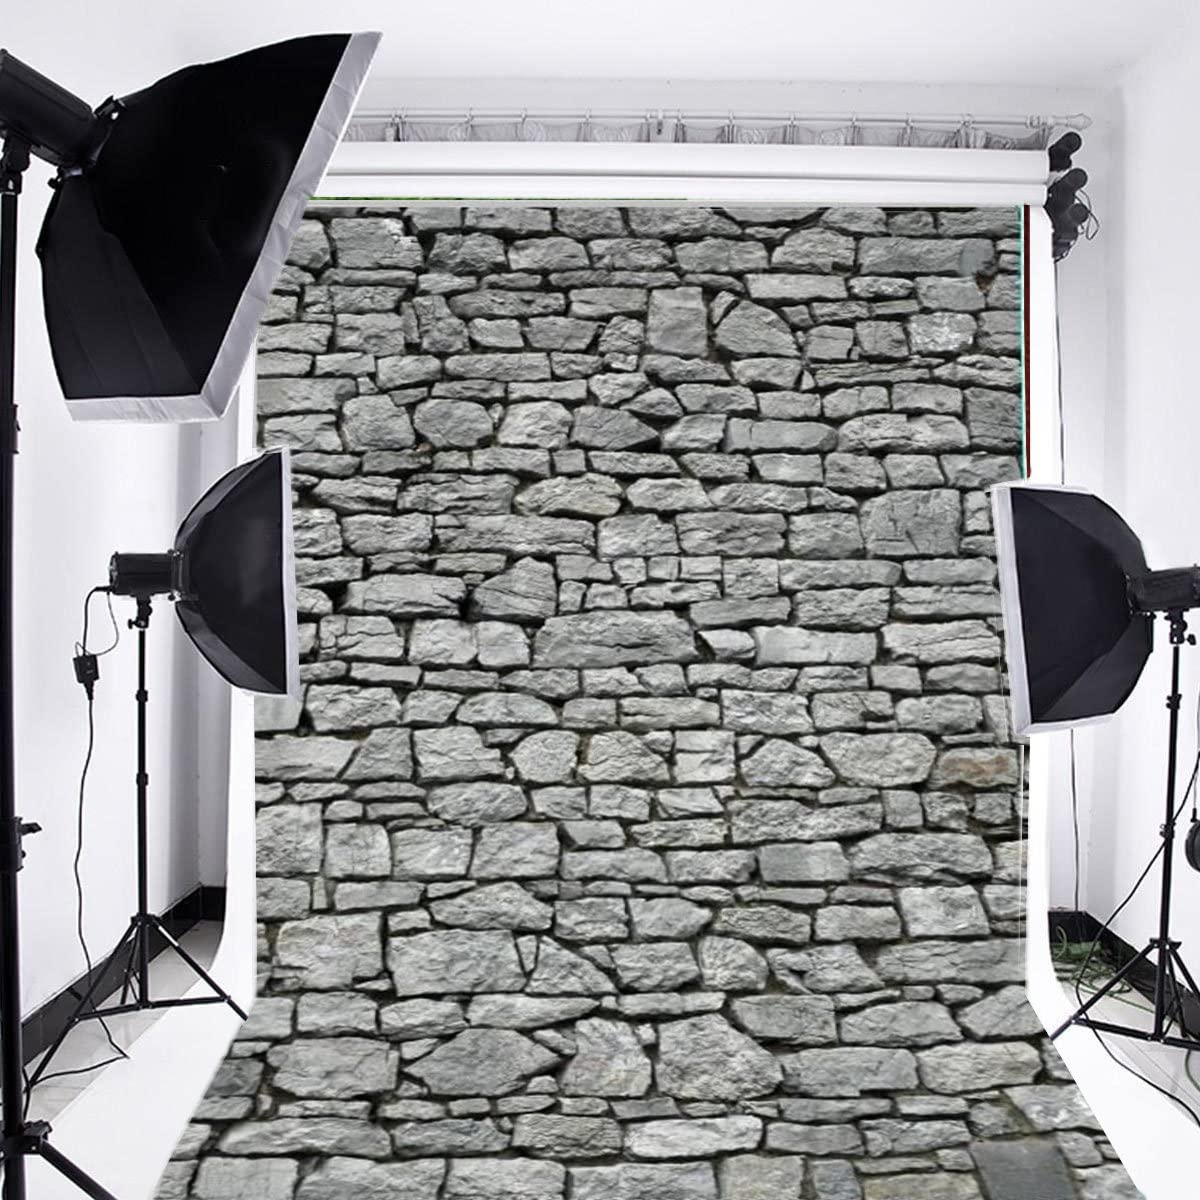 HD 7x5ft City Landmarks Backdrop Vintage Brick Wall Building Photography Background Themed Party Photo Booth YouTube Backdrop HUIMT436